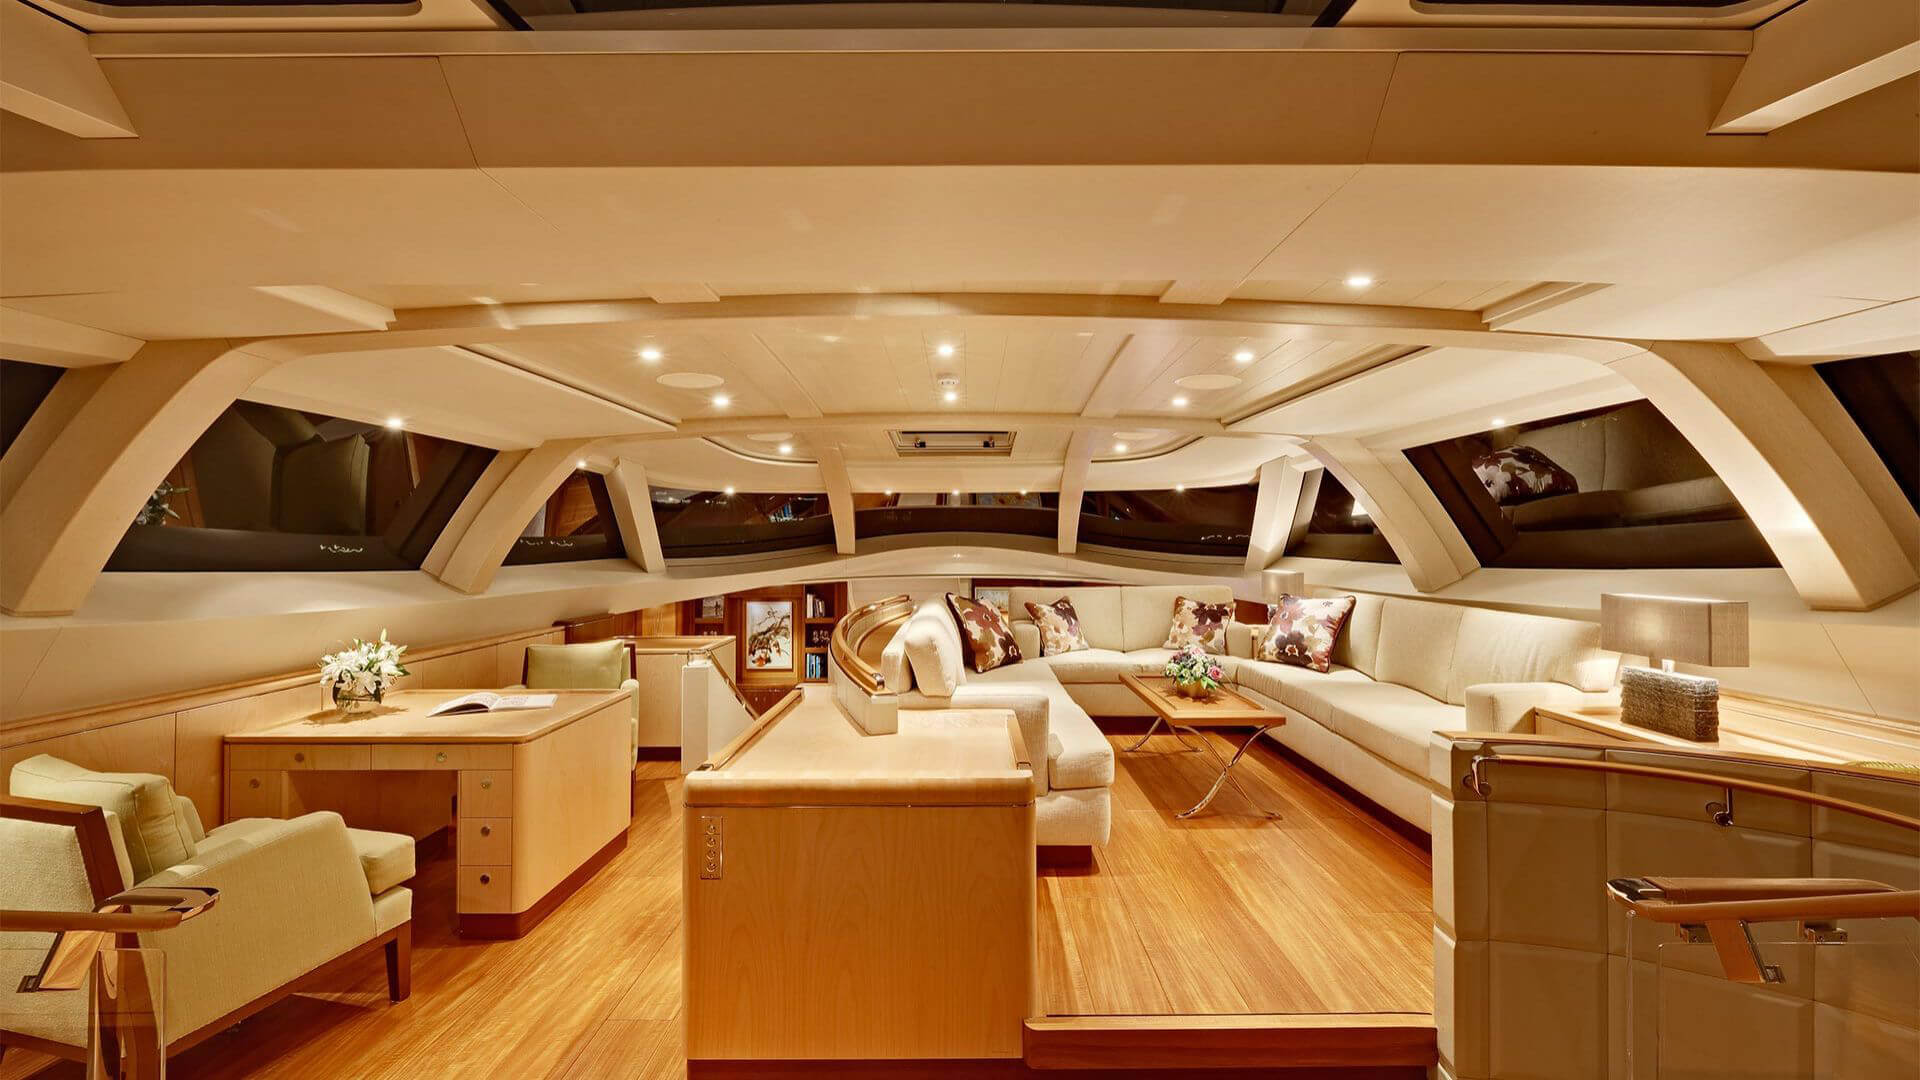 bsw yachteinrichter with yacht interior for living and dining area on luxury sailing yacht.